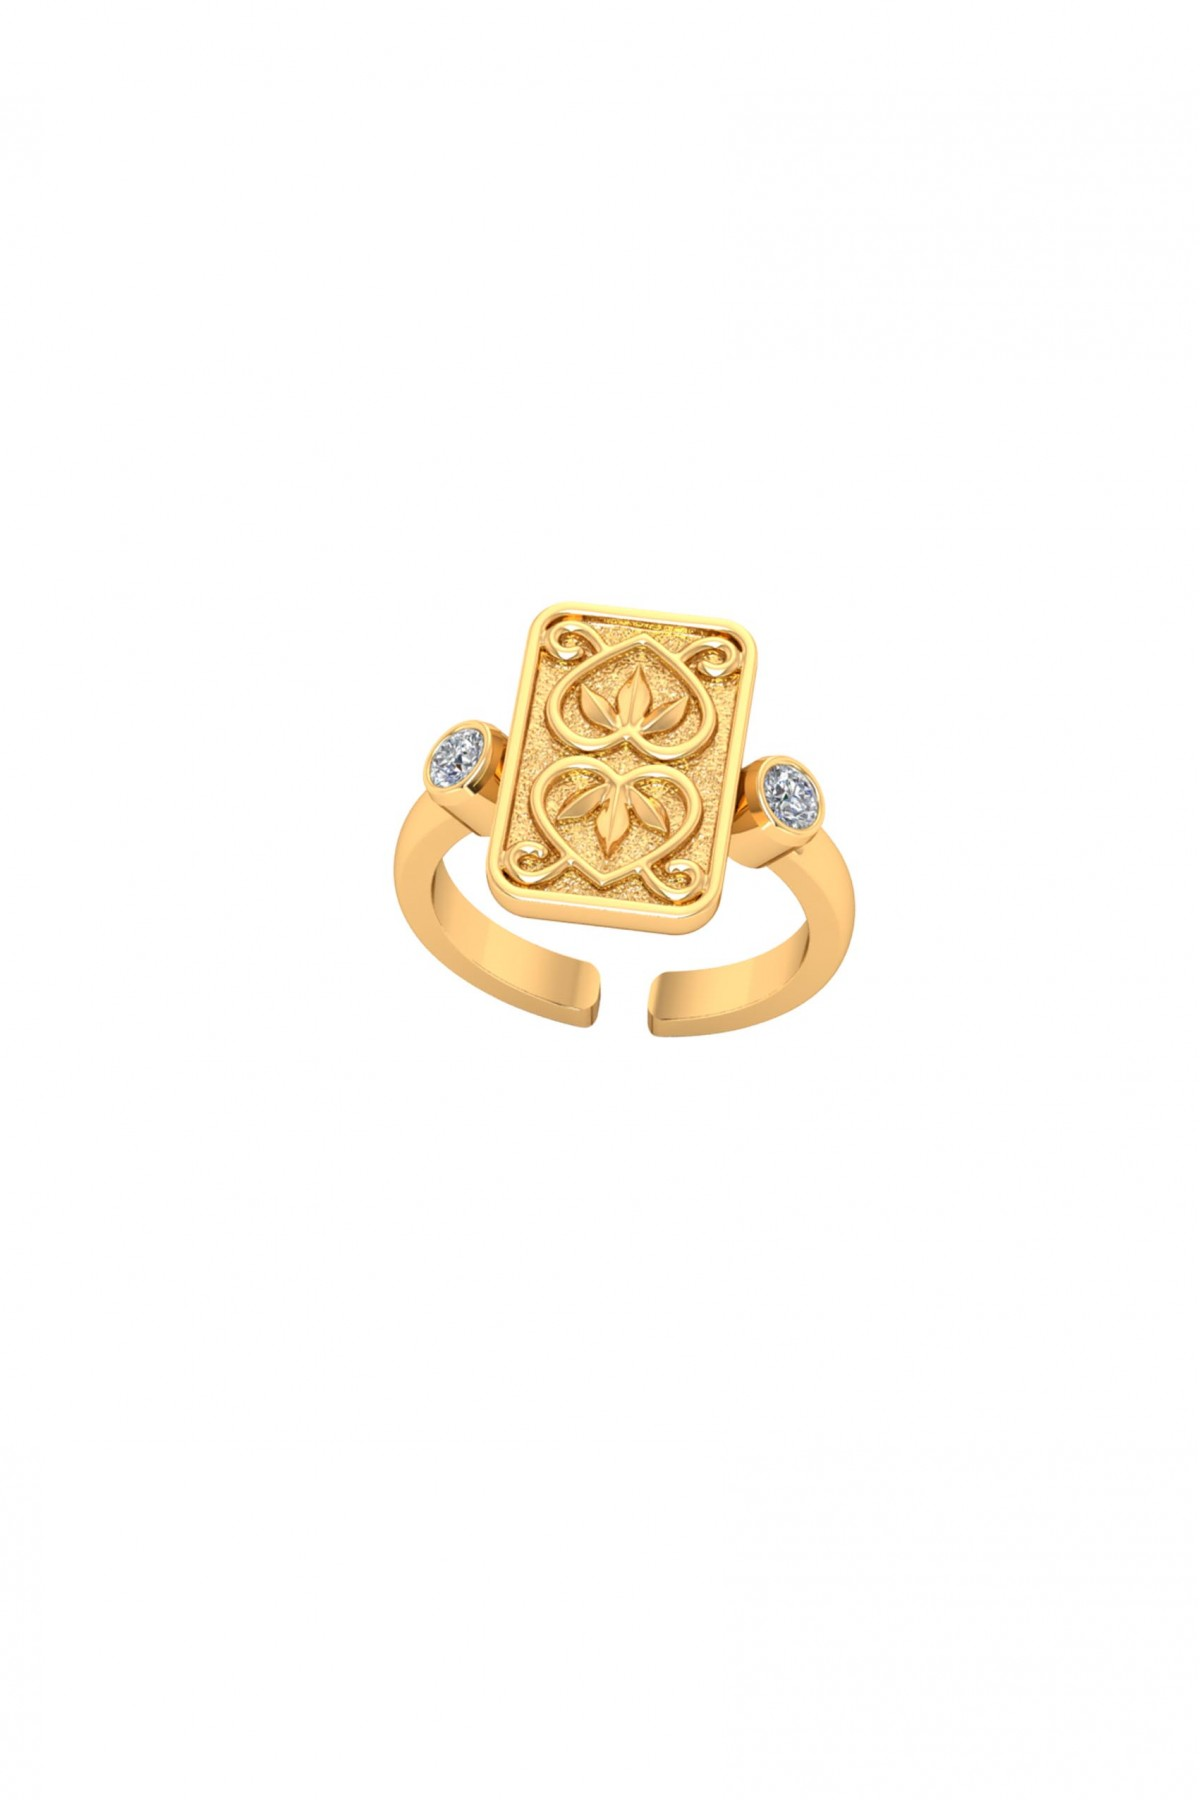 Together Gold Vermeil Ring